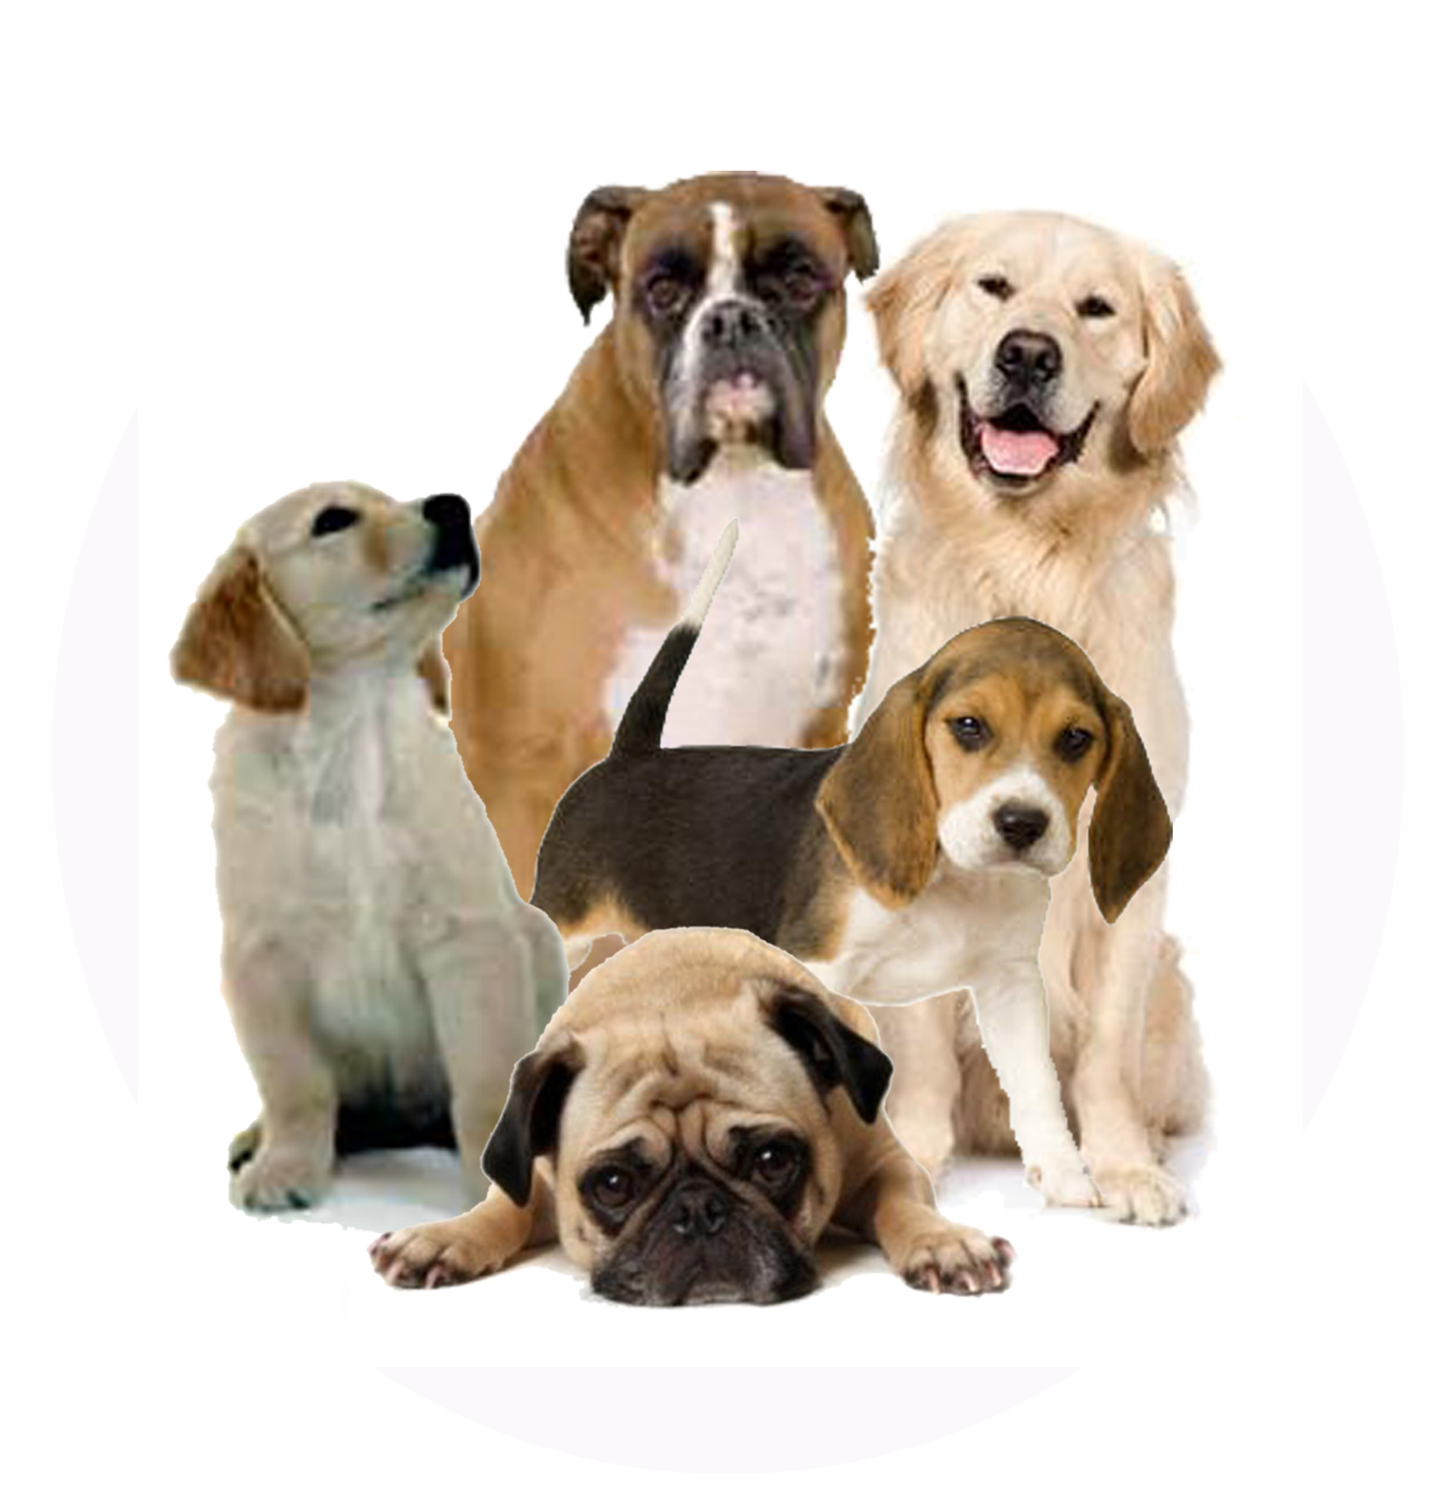 Png dog. Transparent pictures free icons